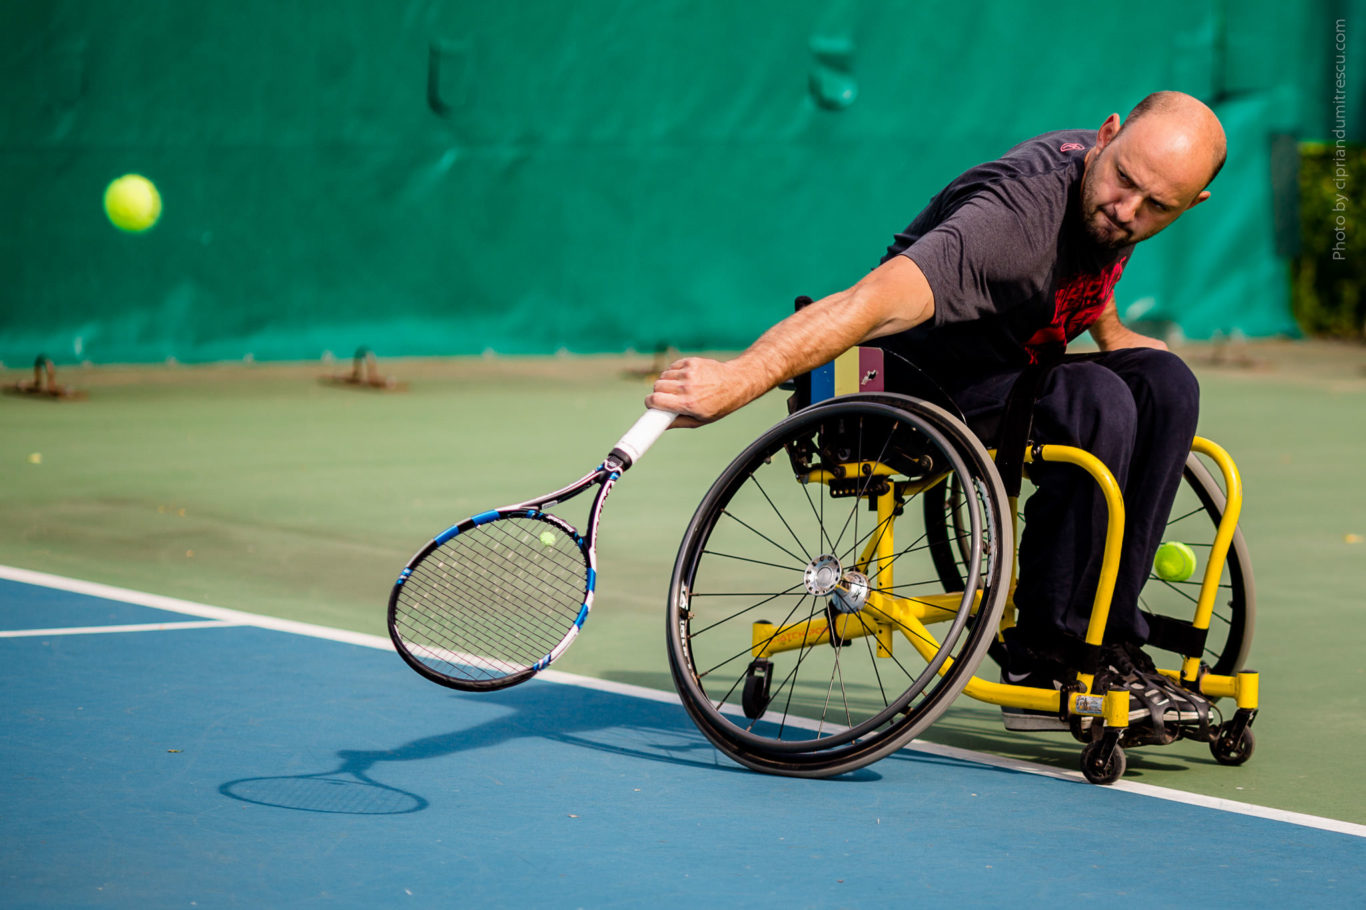 002-Bucharest-Open-Wheelchair-2016-Day-One-Photographer-Ciprian-Dumitrescu